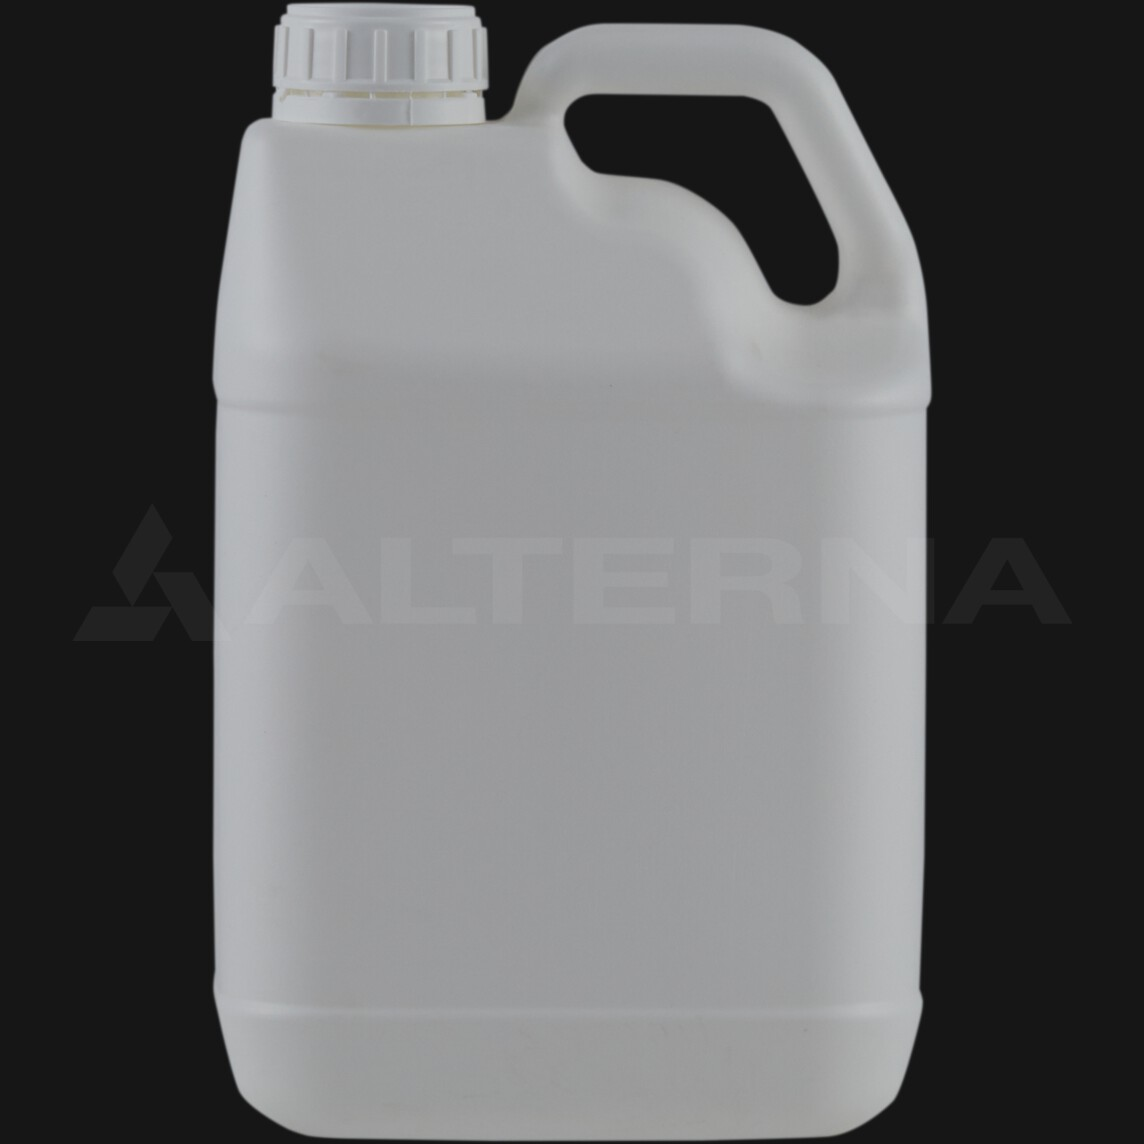 5 Liter HDPE Jerry Can with 50 mm Foam Seal Secure Cap